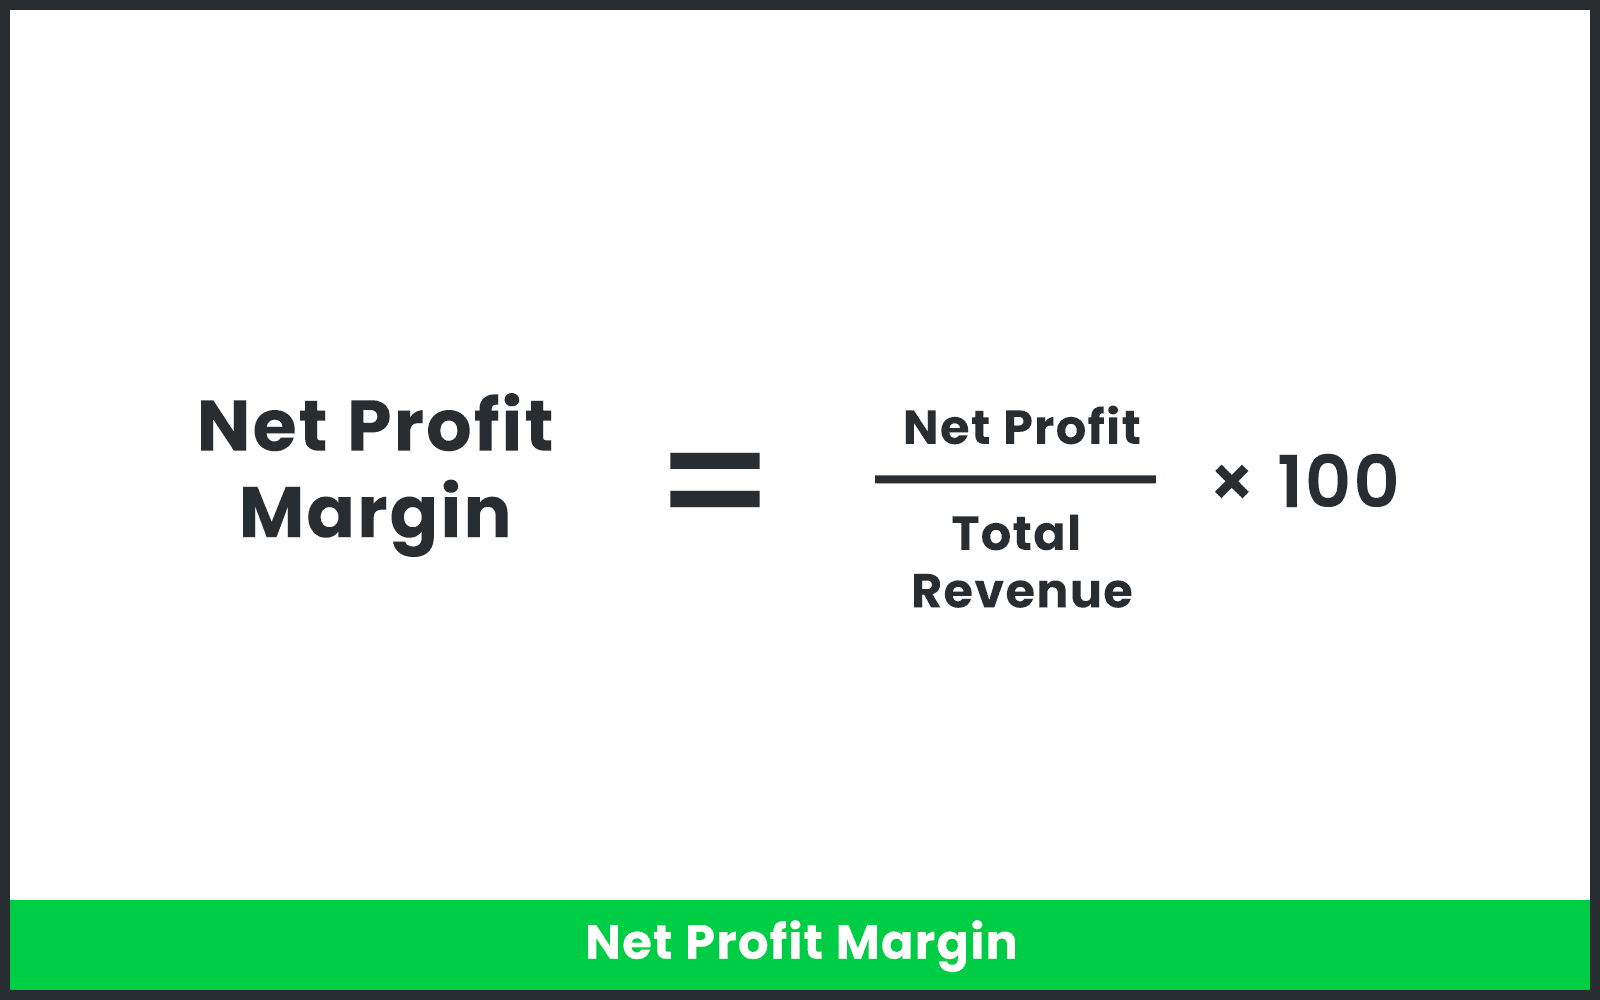 The equation for net profit ratio